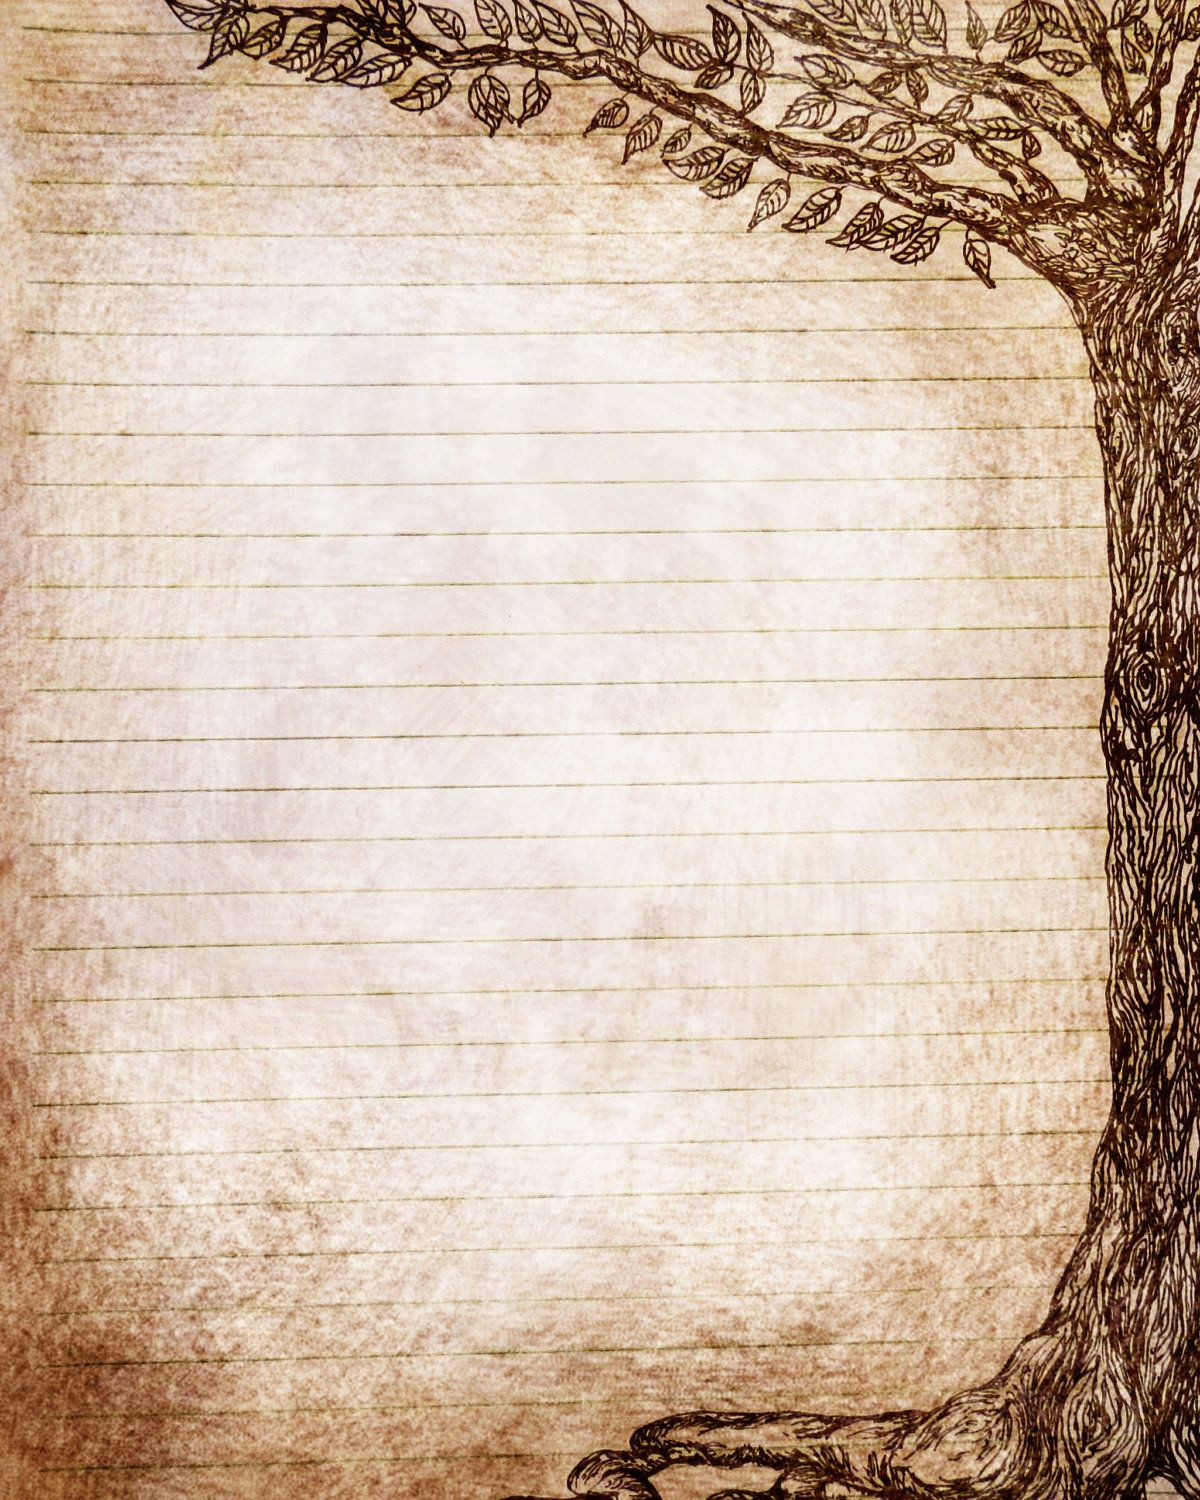 Beautiful Tree Drawing Journal Page | Create It!! | Pinterest - Free Printable Journal Pages Lined